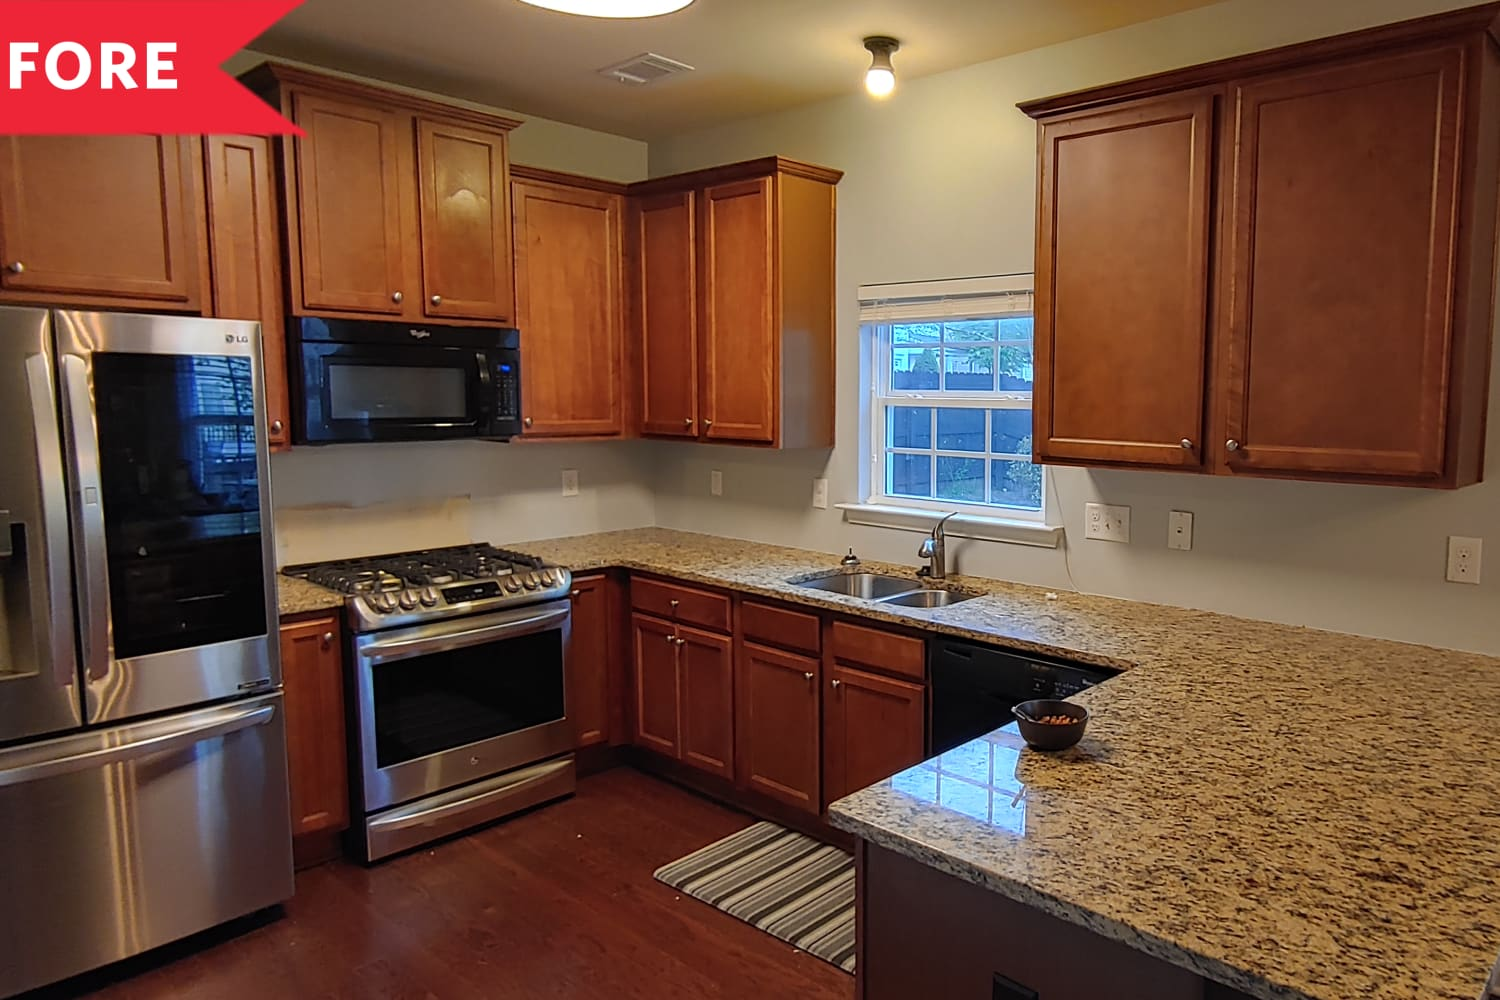 Before and After: A Bland Brown Kitchen Gets a Bright White Redo — With a Twist